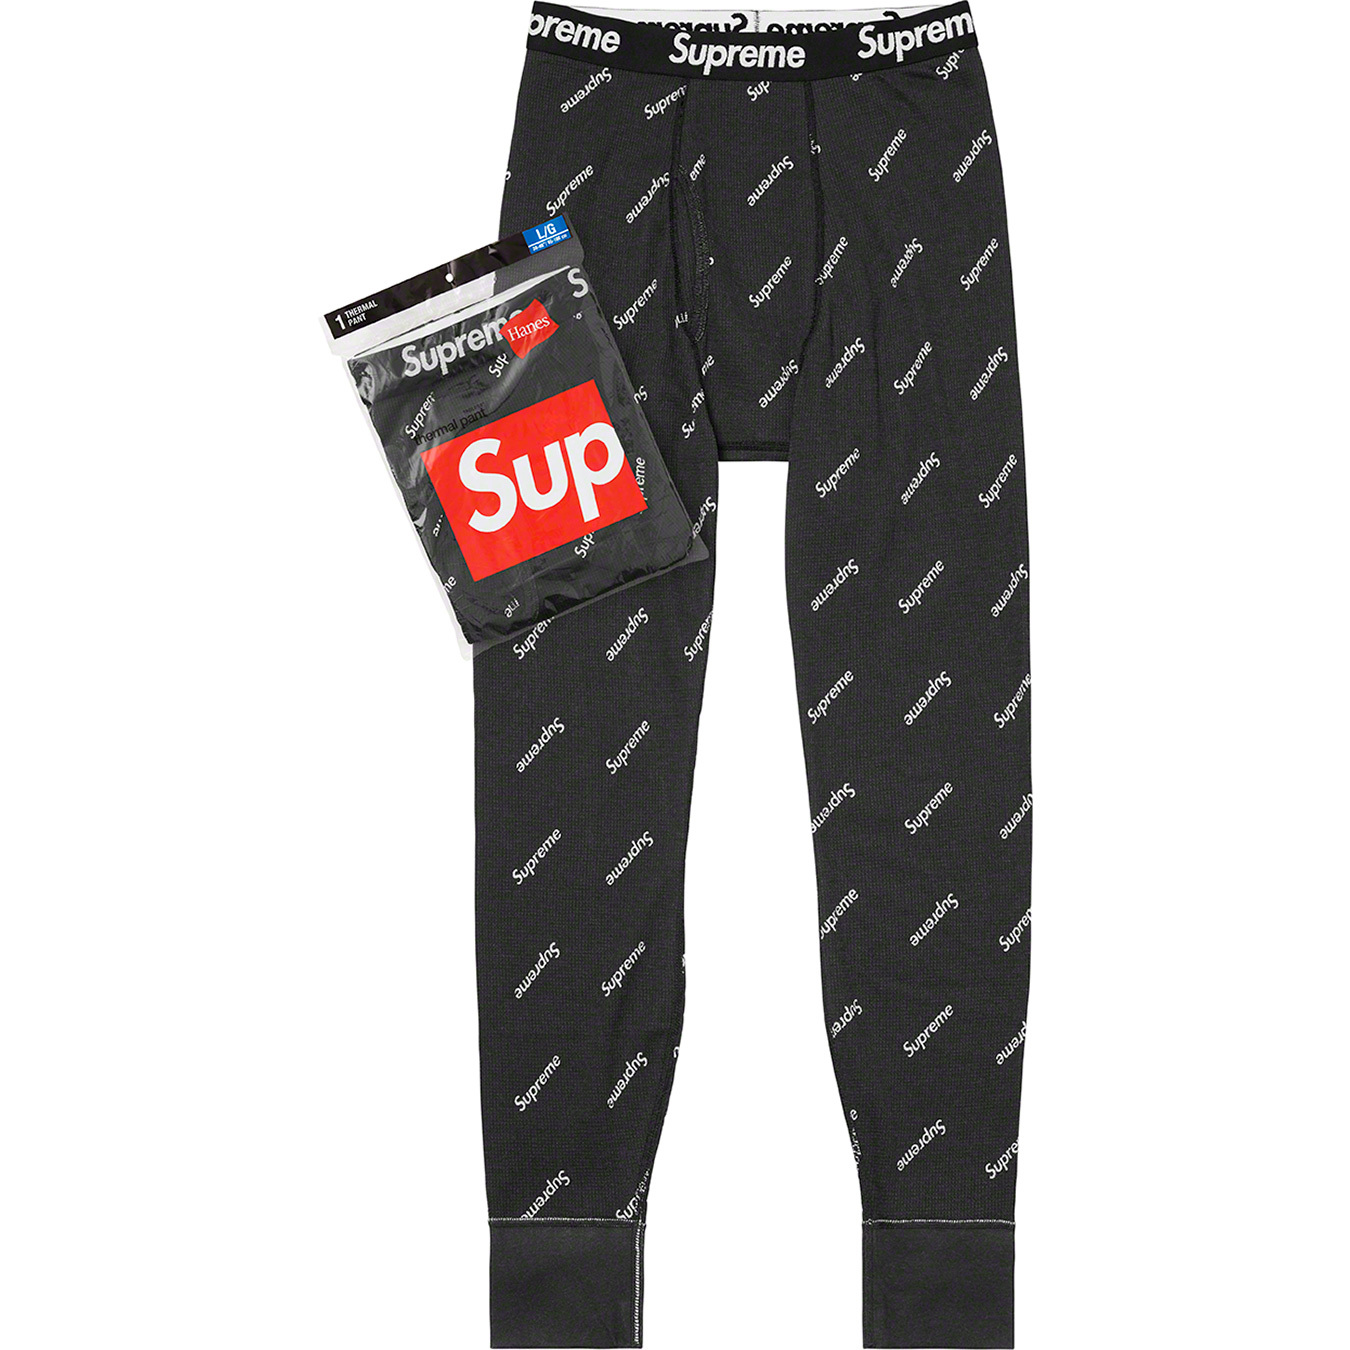 supreme-20aw-20fw-supreme-hanes-thermal-pant-1-pack